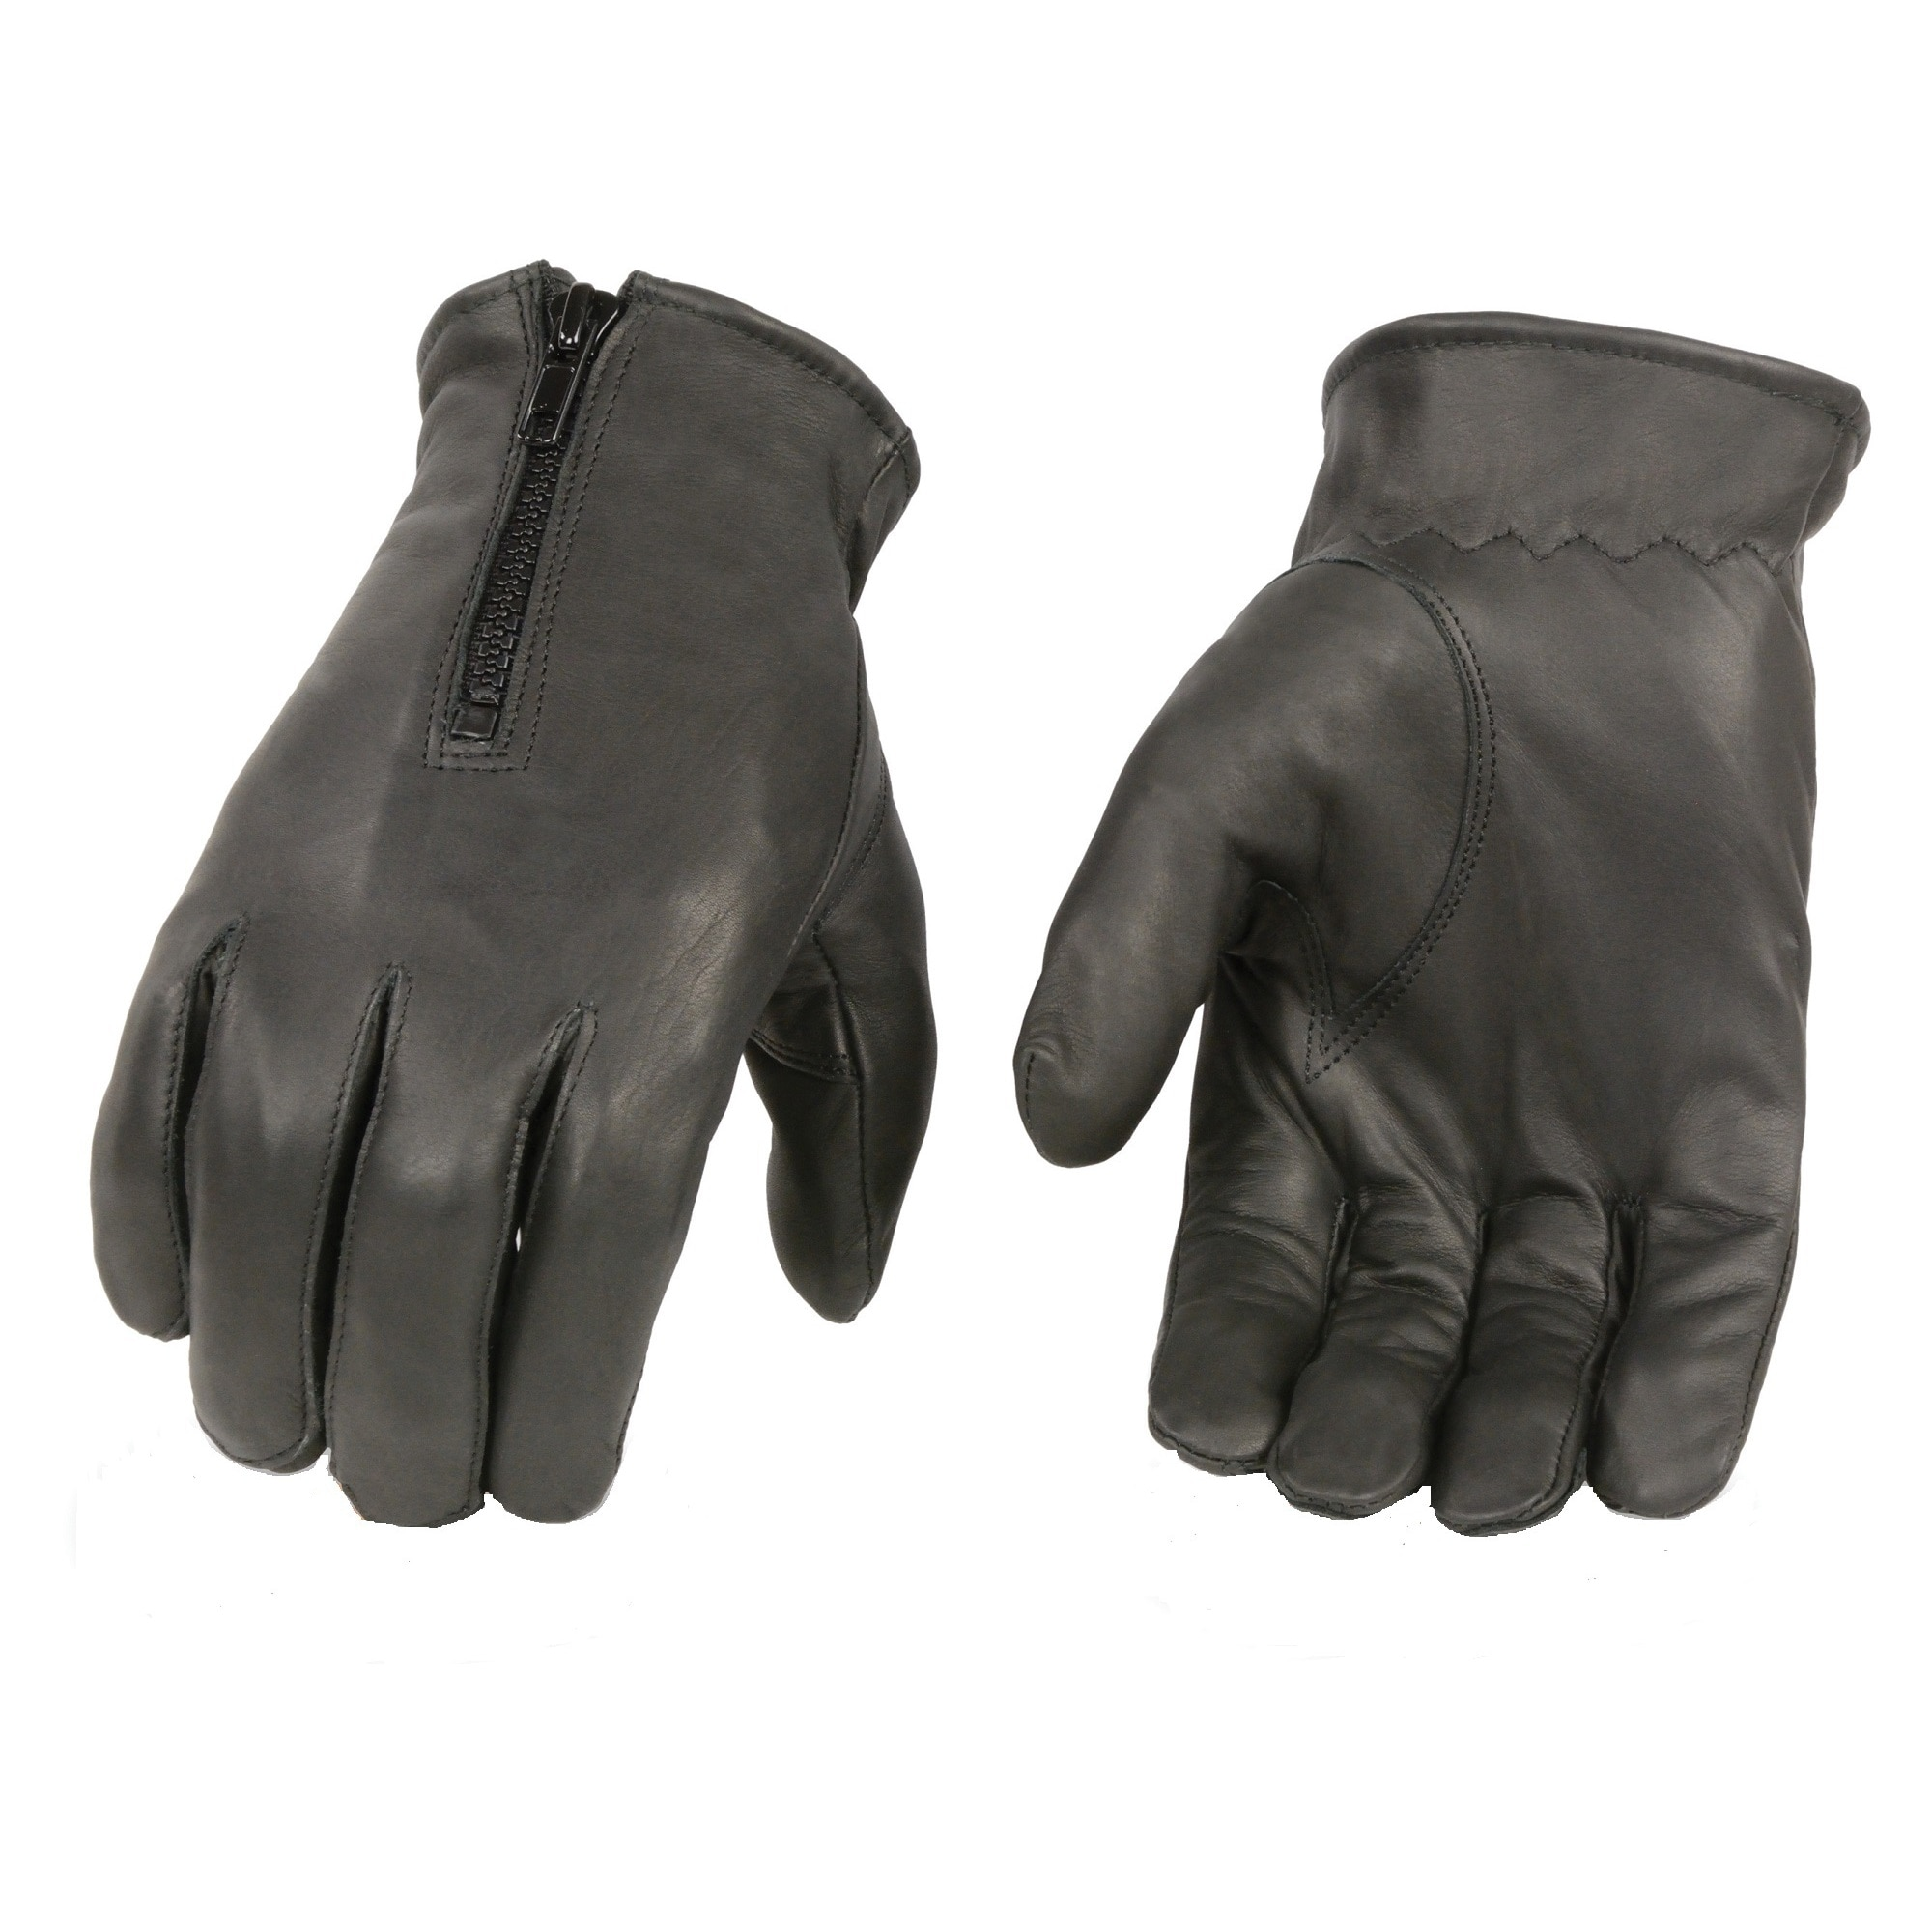 MILWAUKEE LEATHER Men's Black Premium Leather Zippered Unlined Driving Gloves